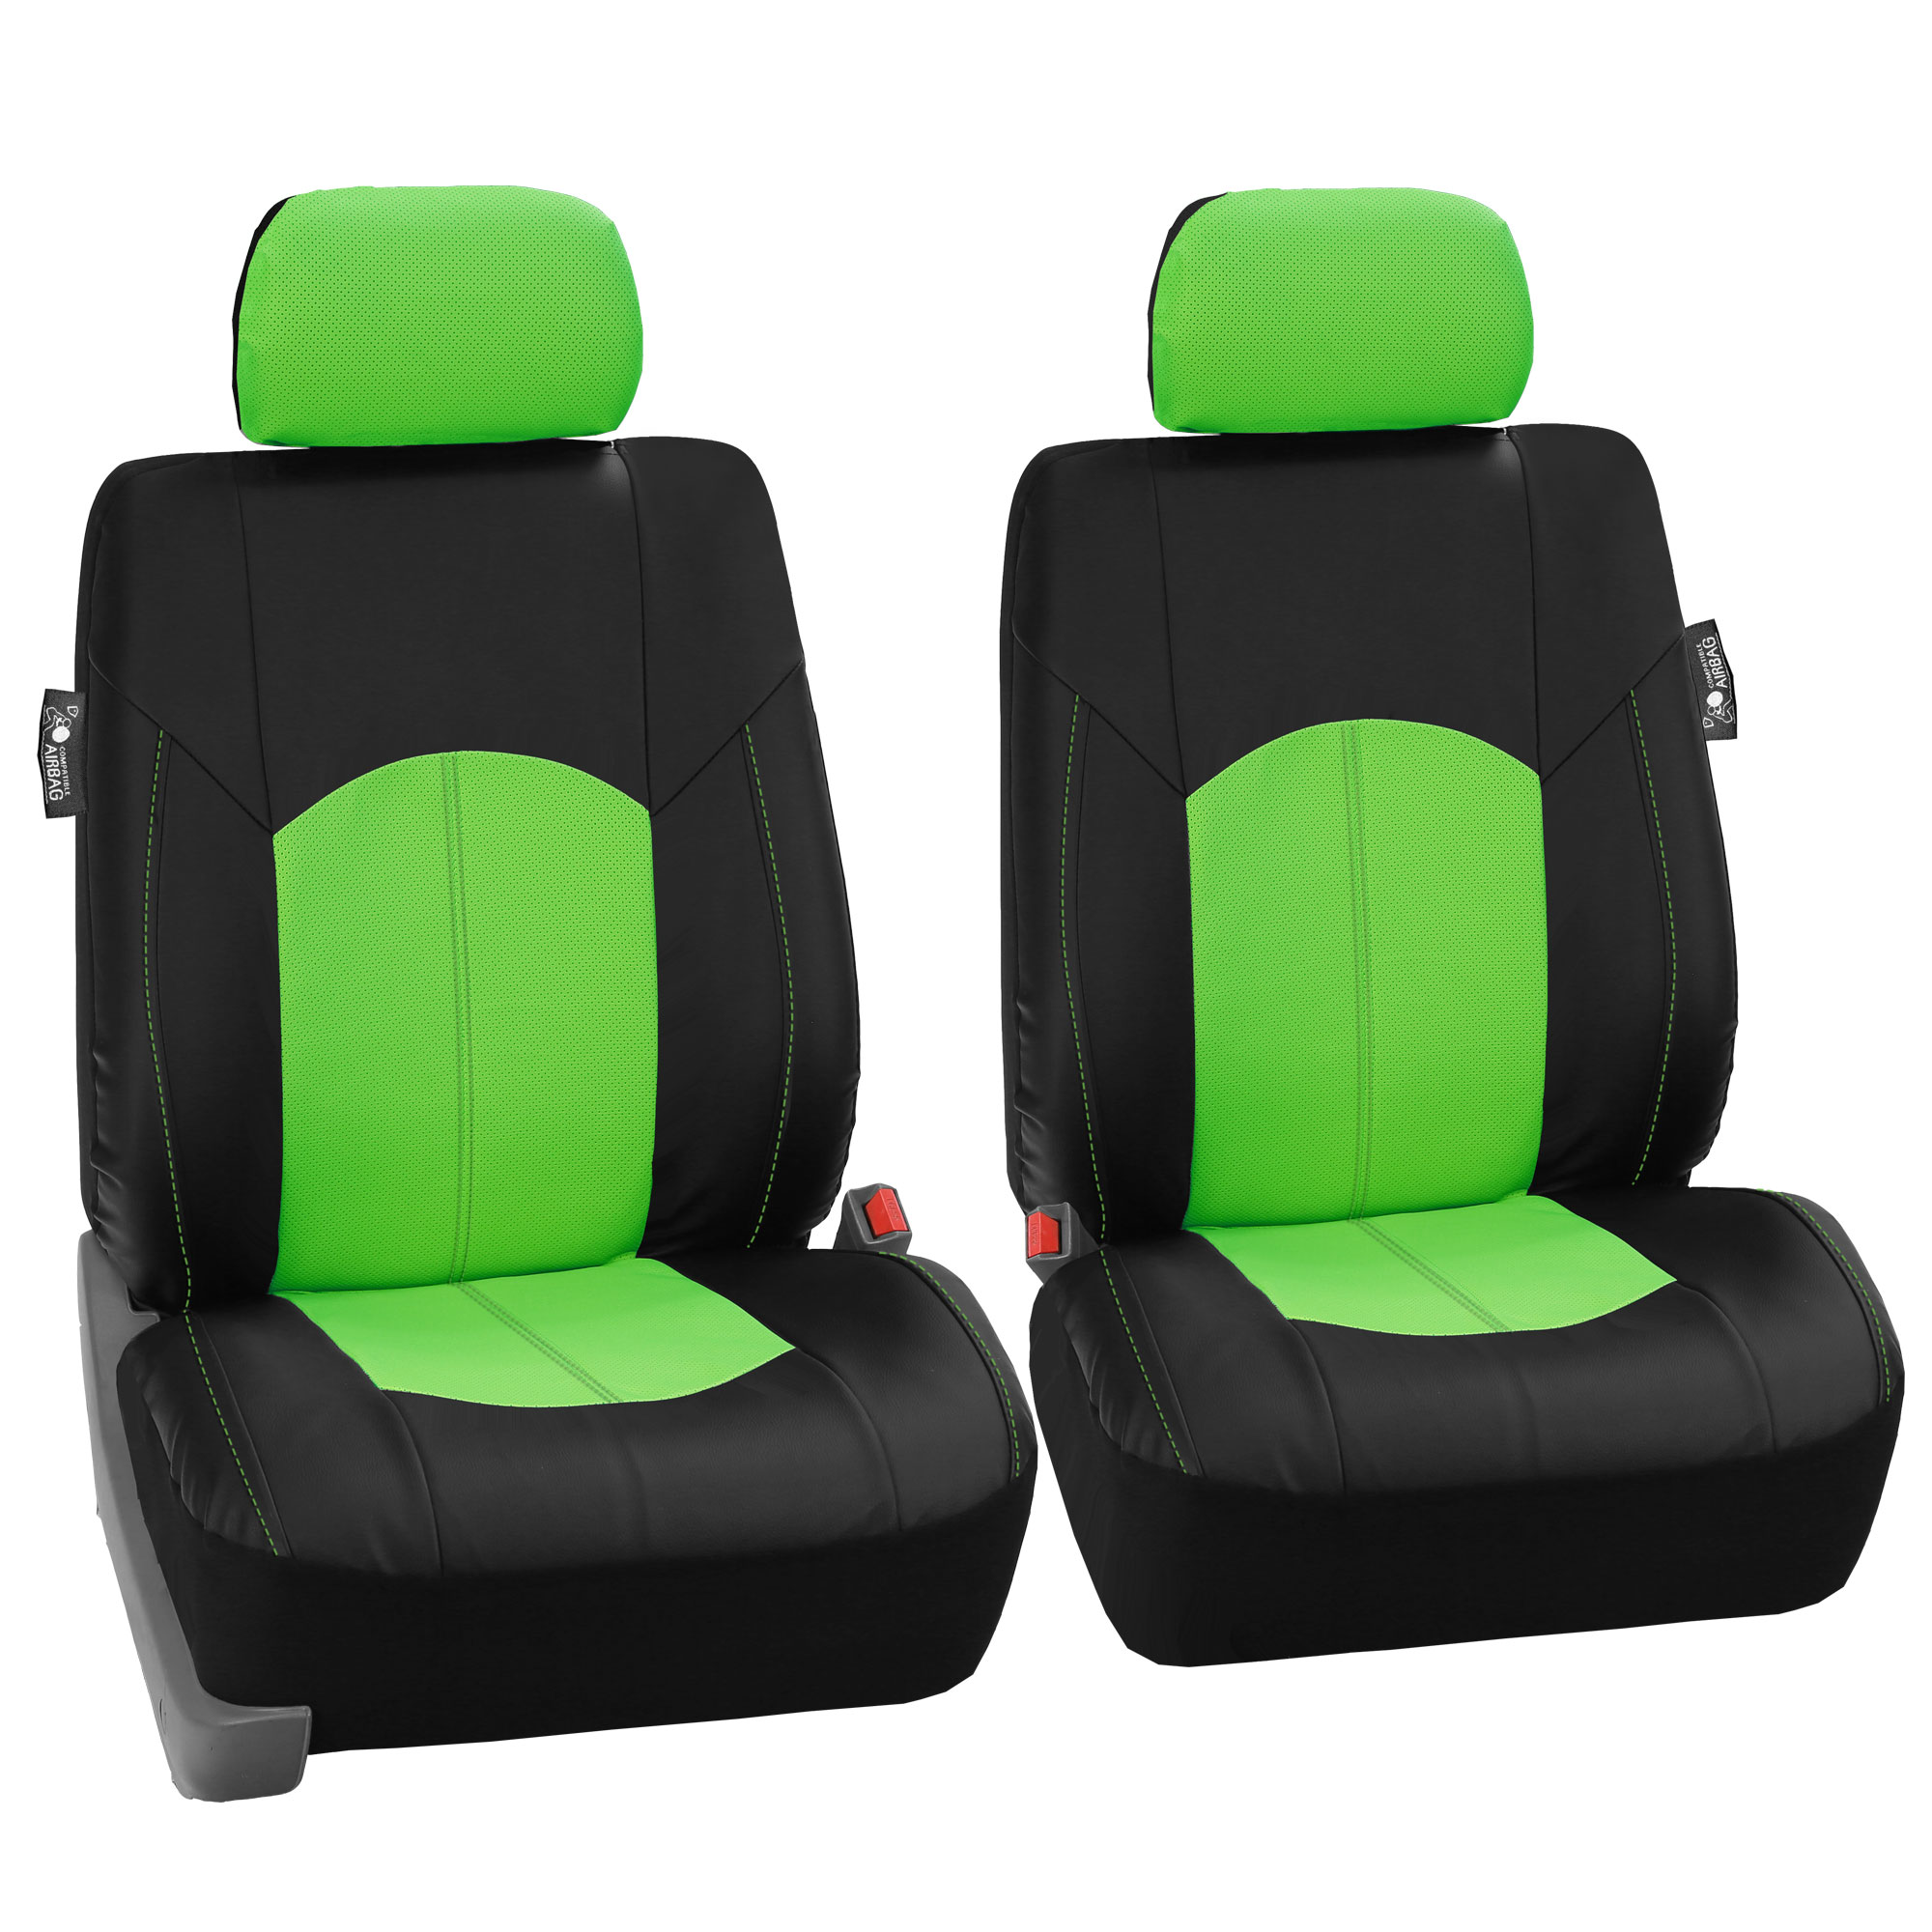 Perforated Leather Car Seat Covers